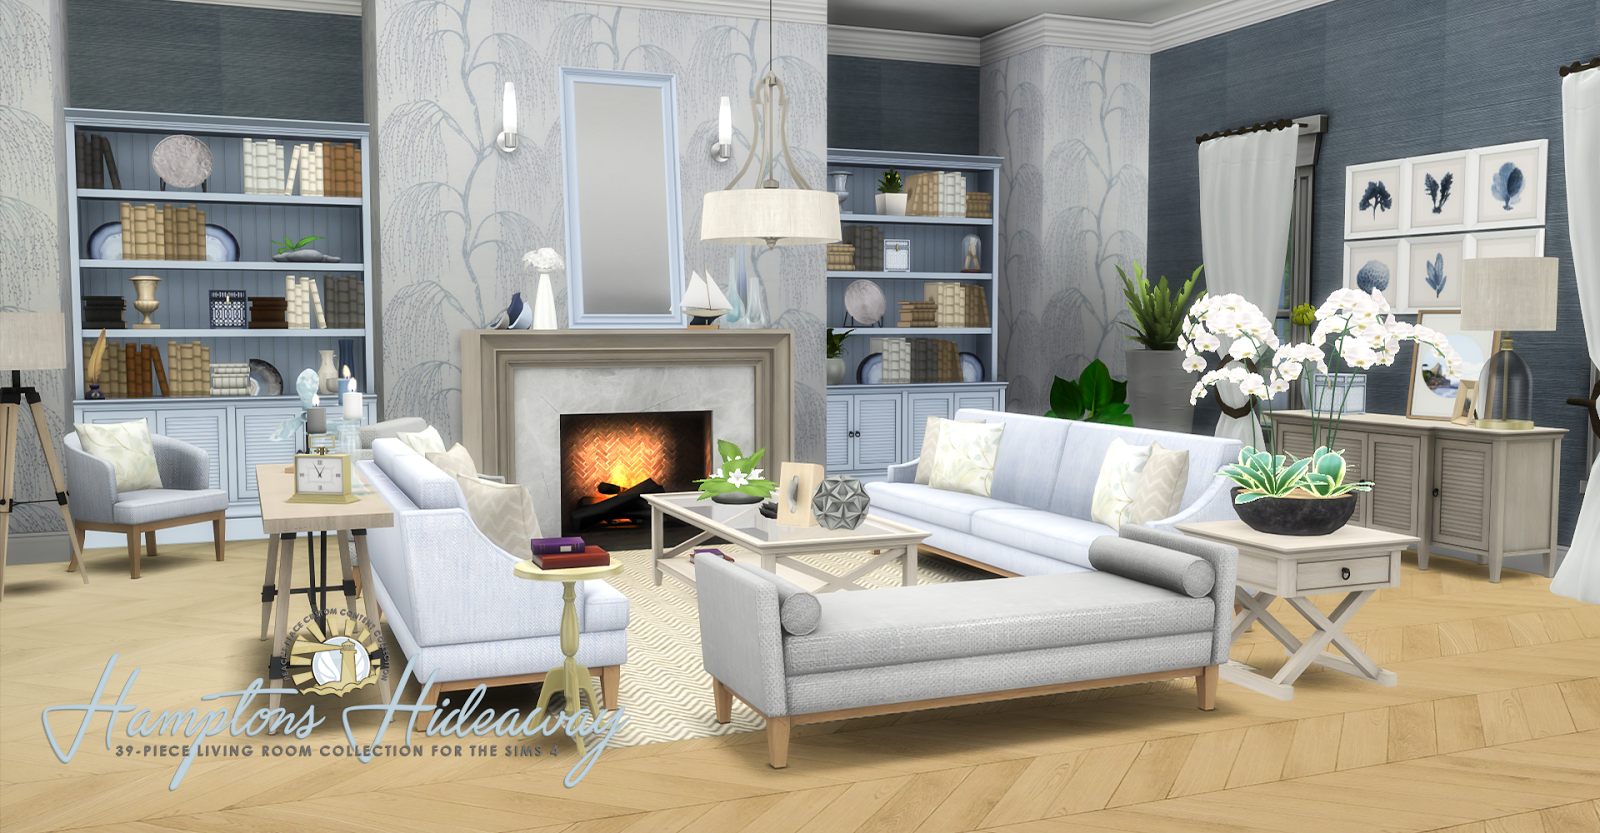 My Sims 4 Blog Updated Hamptons Hideaway Living Room